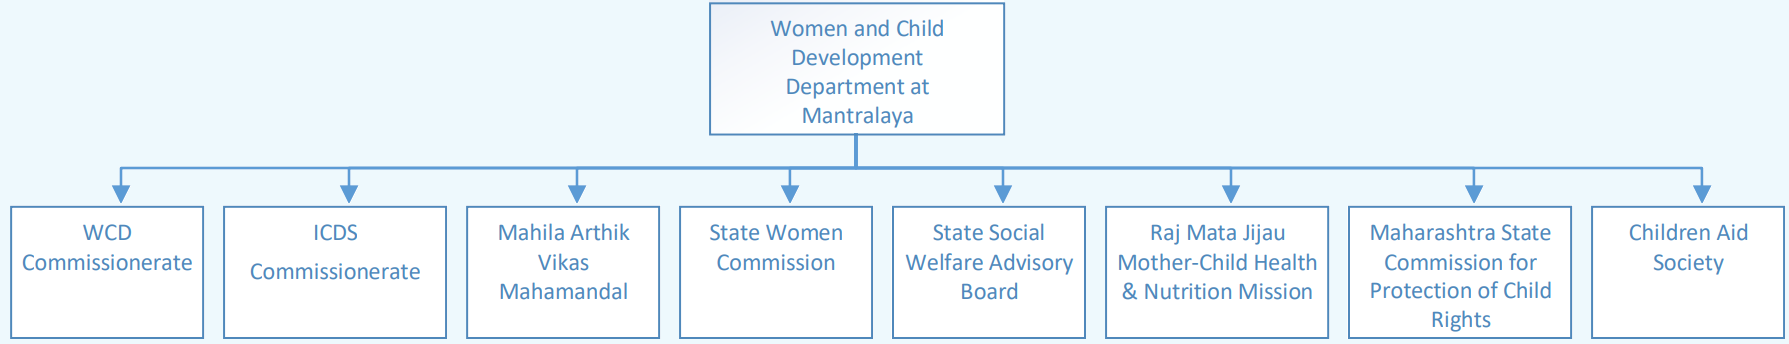 Organizational Structure : Women and Child Development